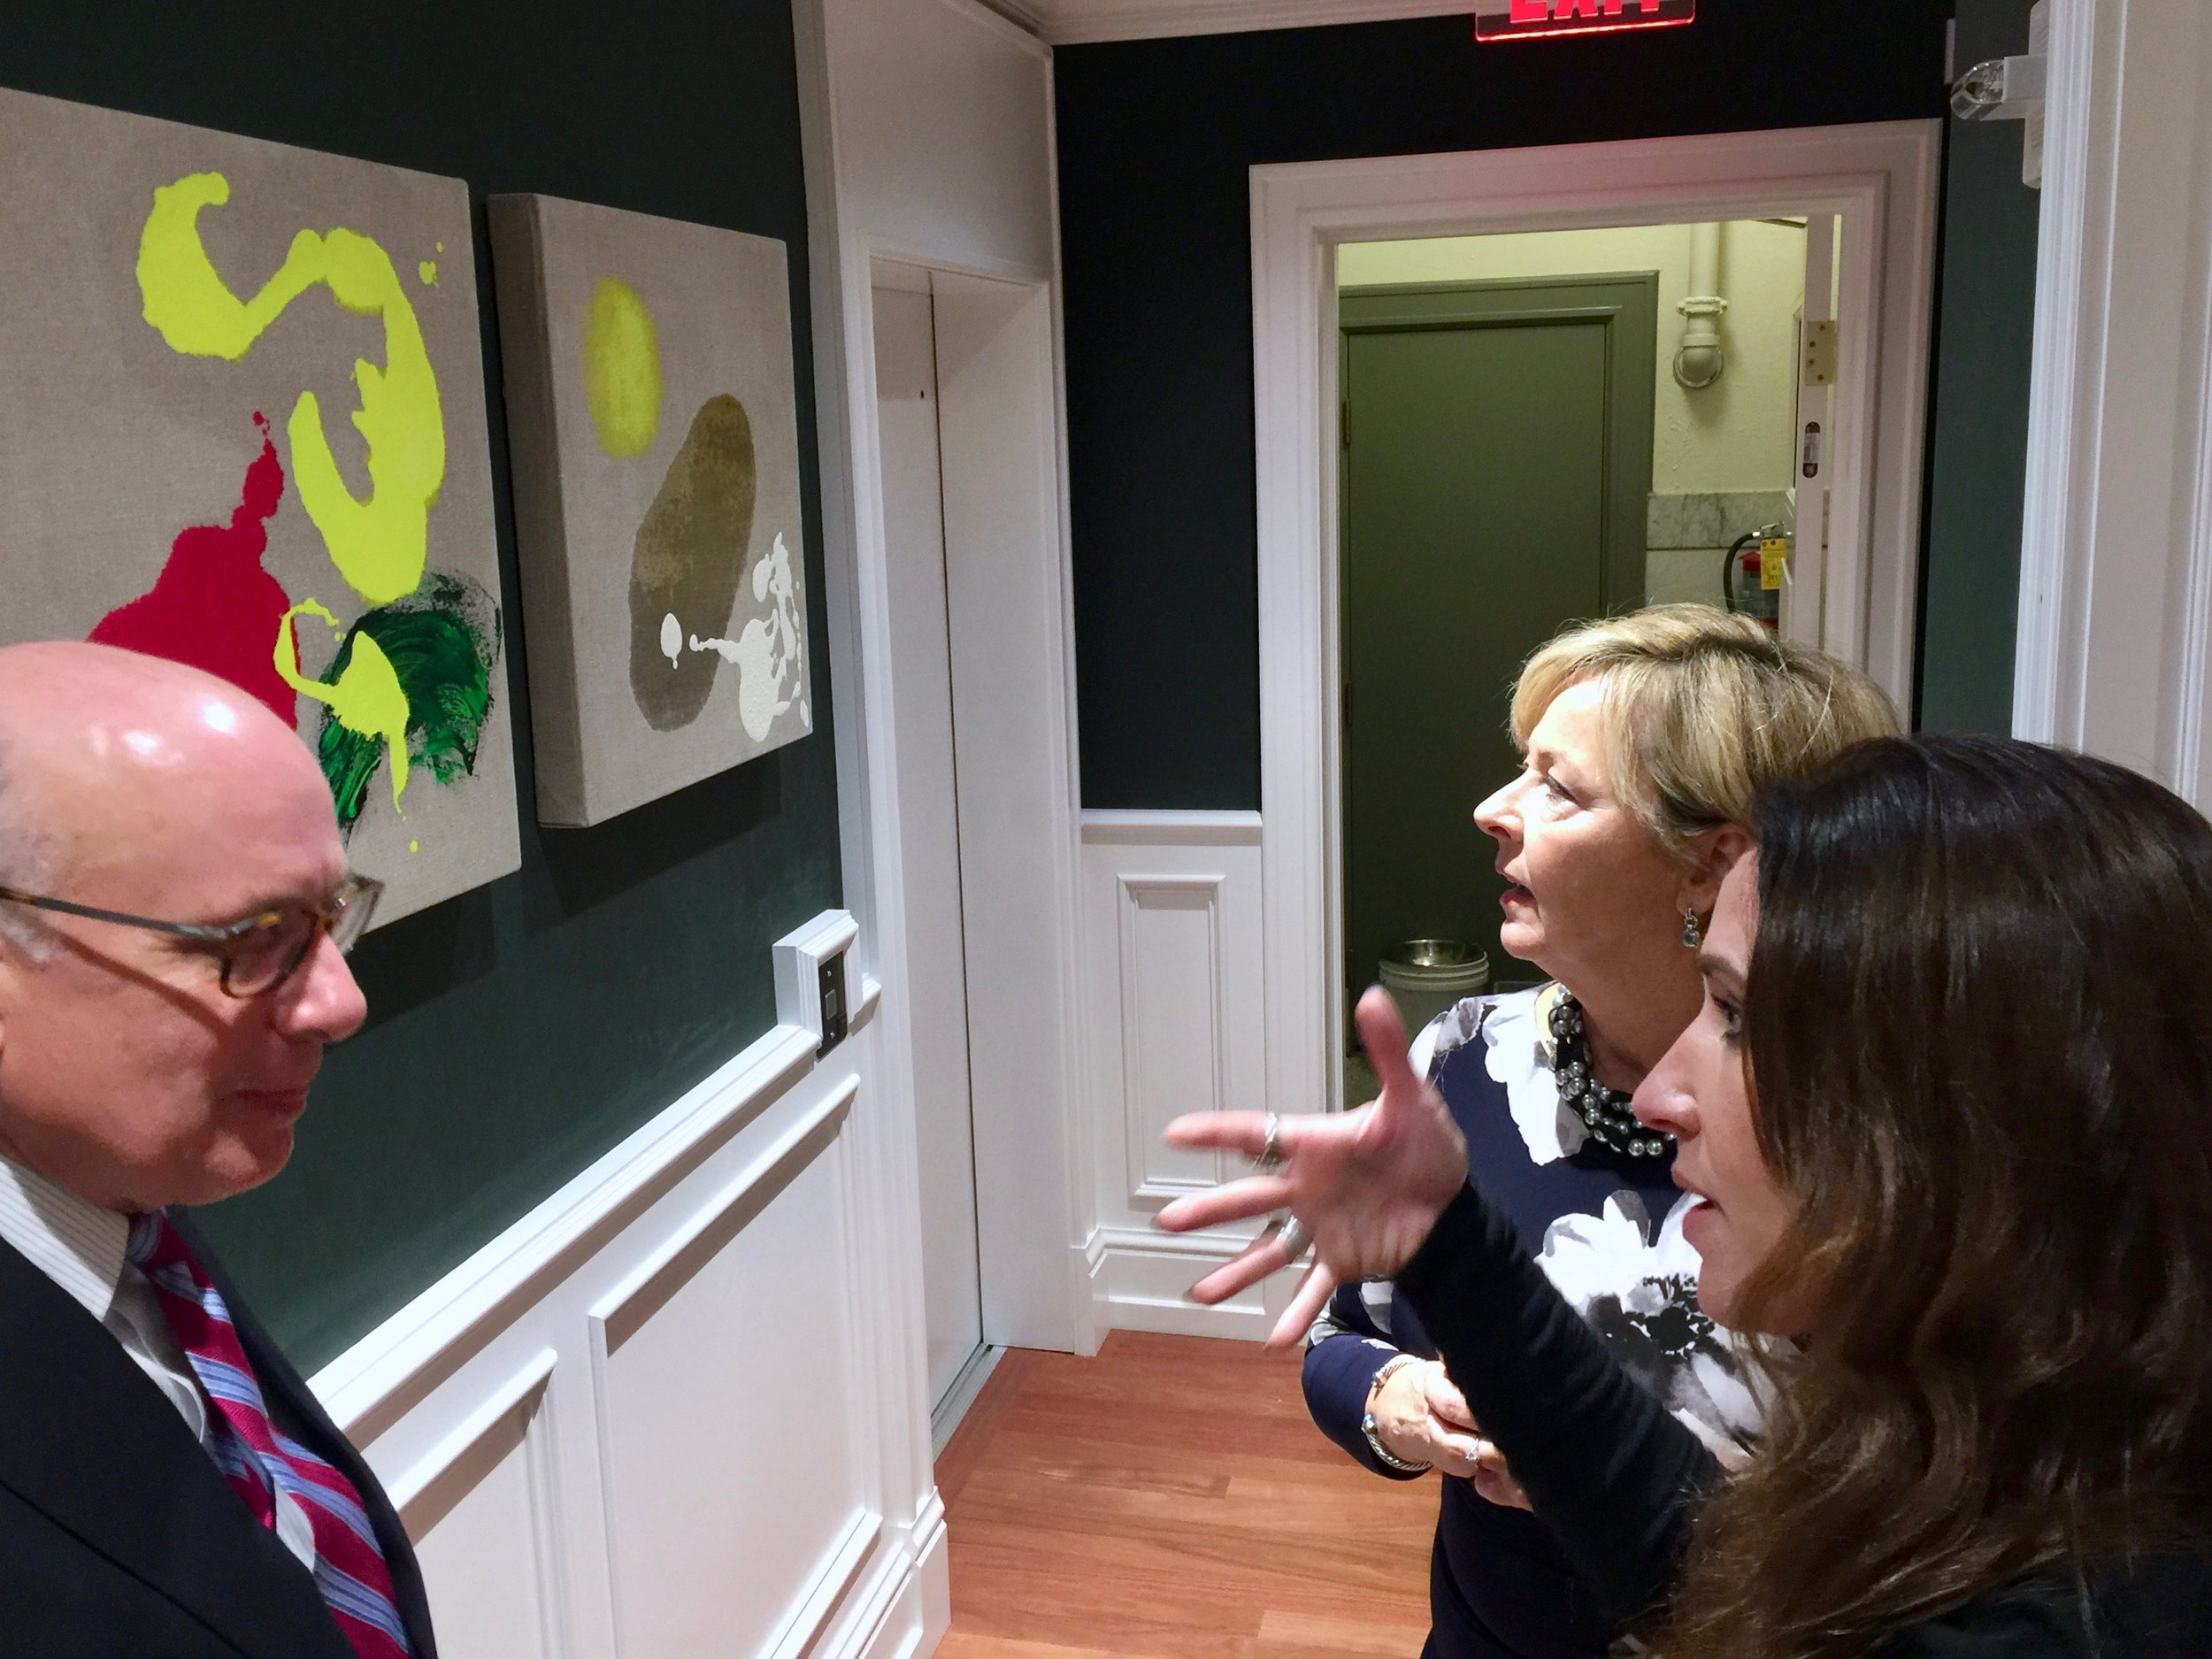 Mia Tarducci connects with guests over paintings.